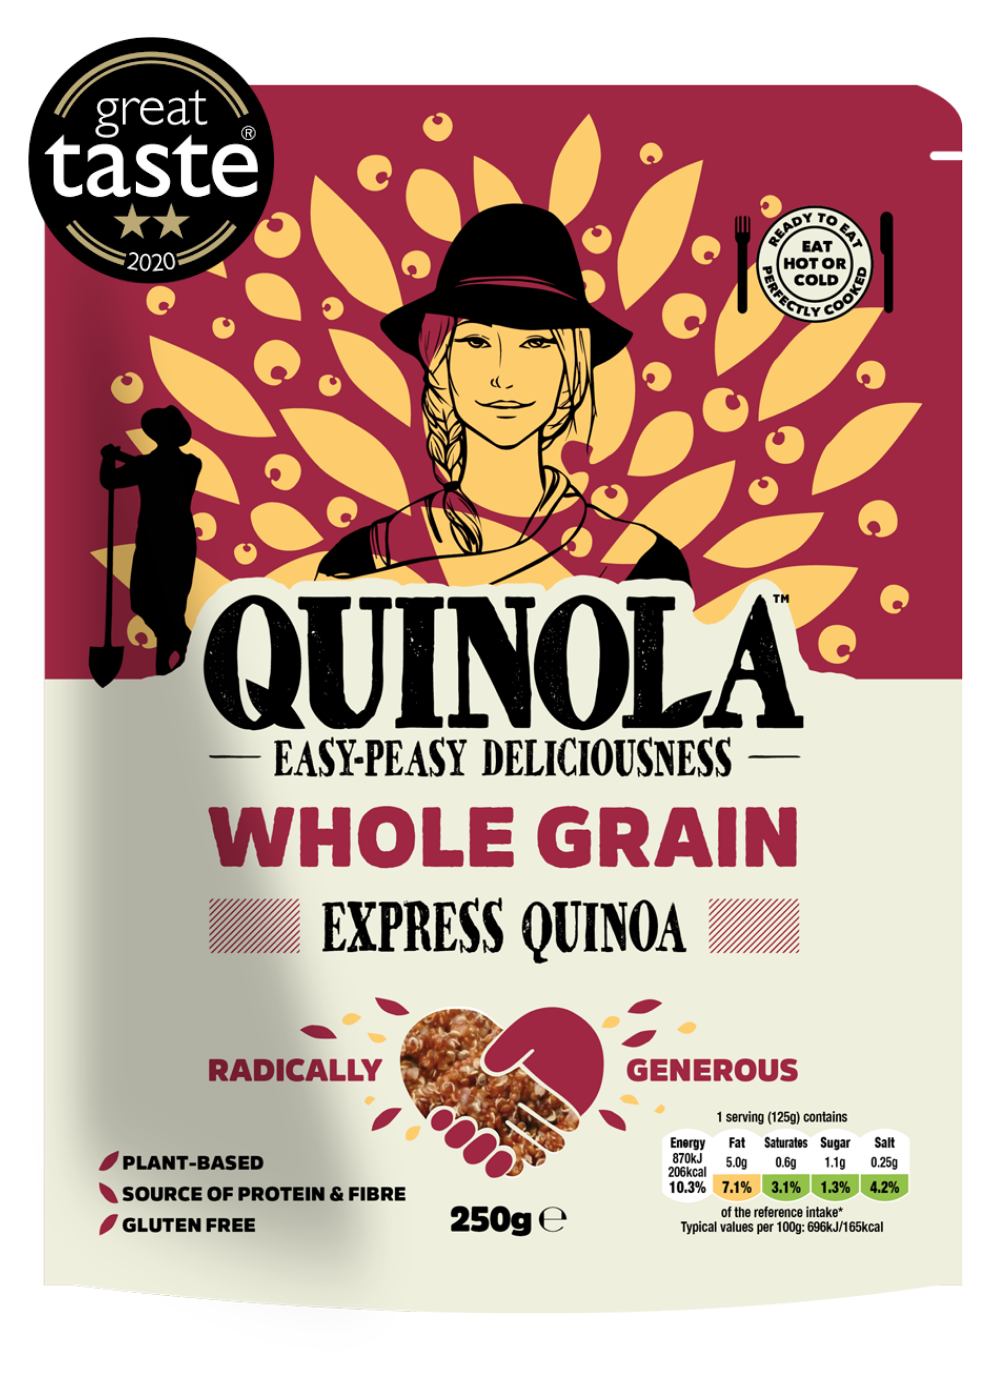 Whole Grain Packet With Great Taste Logo